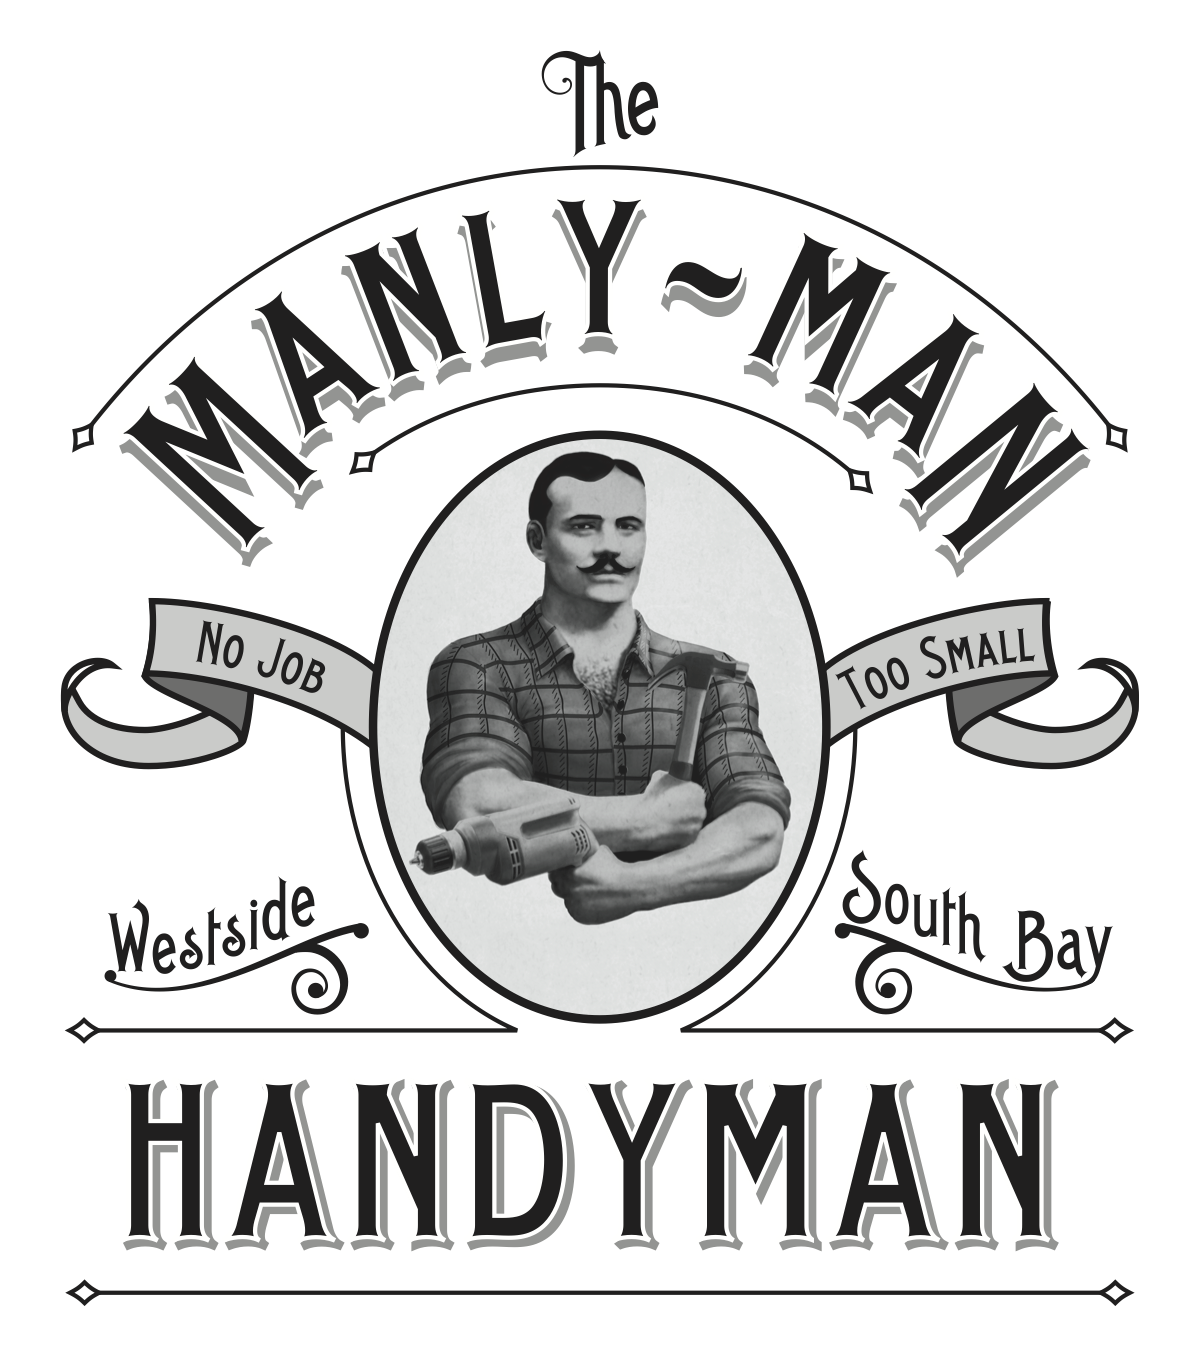 The Manly Man Handyman logo